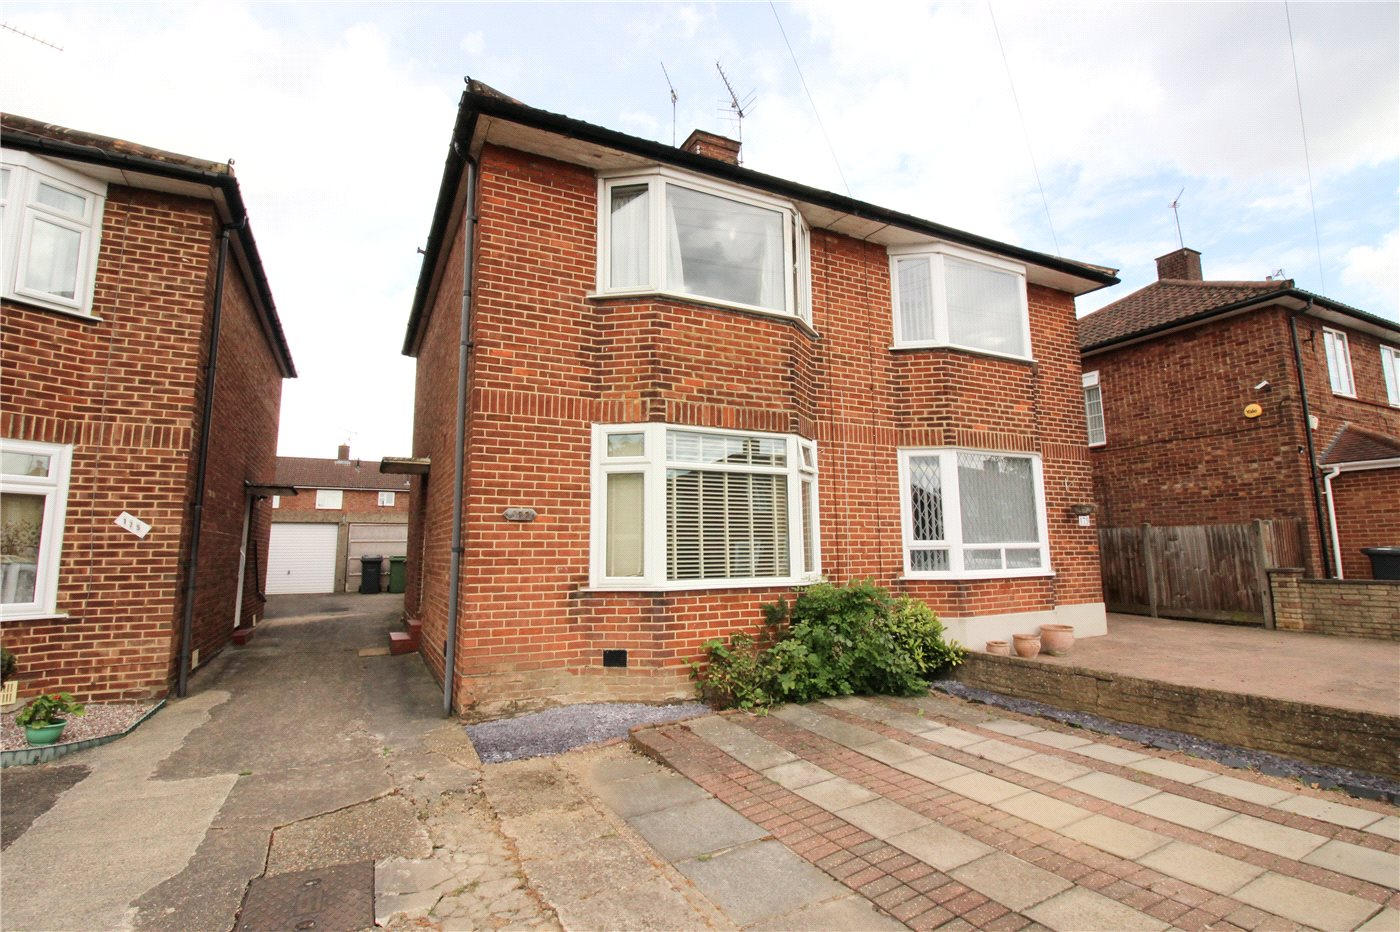 2 Bedrooms Semi Detached House for sale in Bullhead Road, Borehamwood, Hertfordshire, WD6